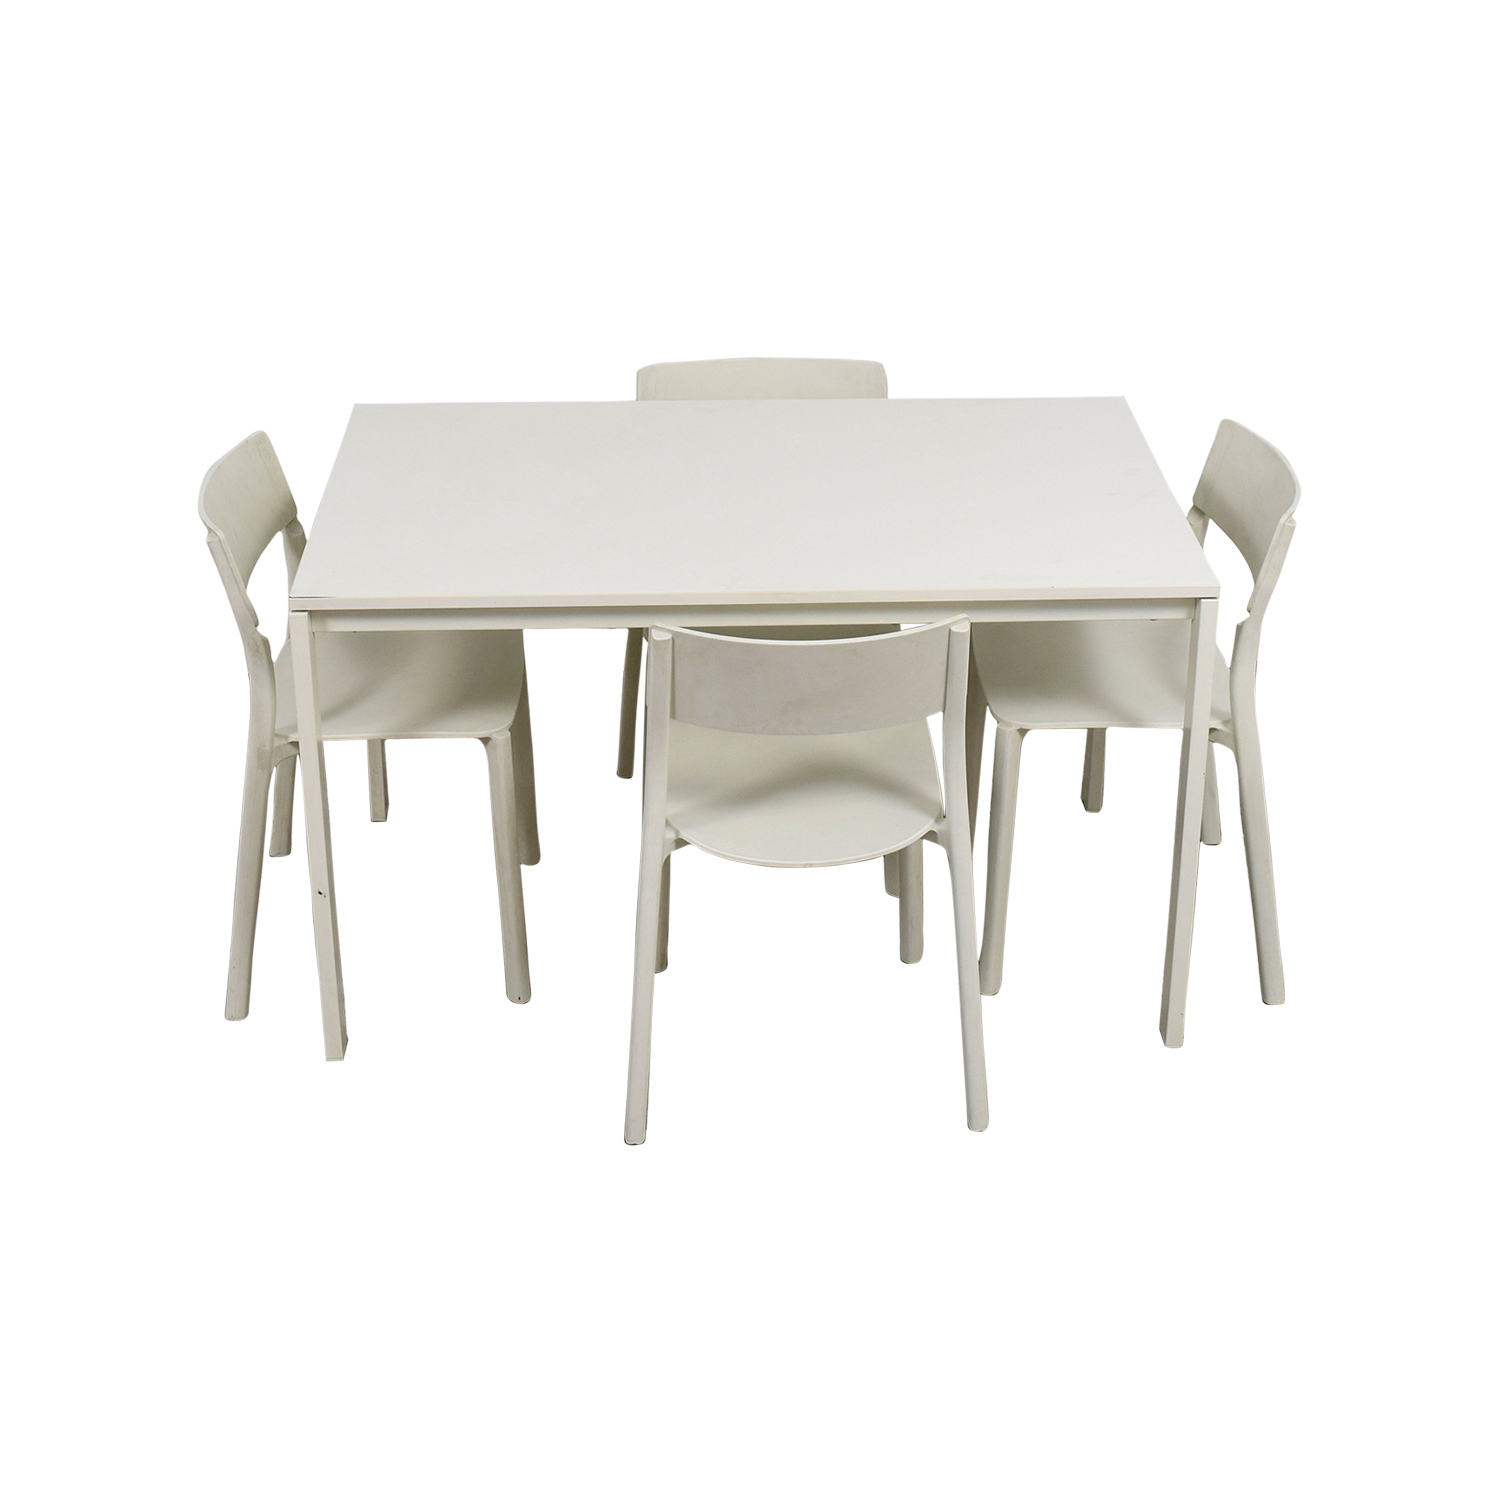 Ikea Kitchen Table: Dining Sets: Used Dining Sets For Sale